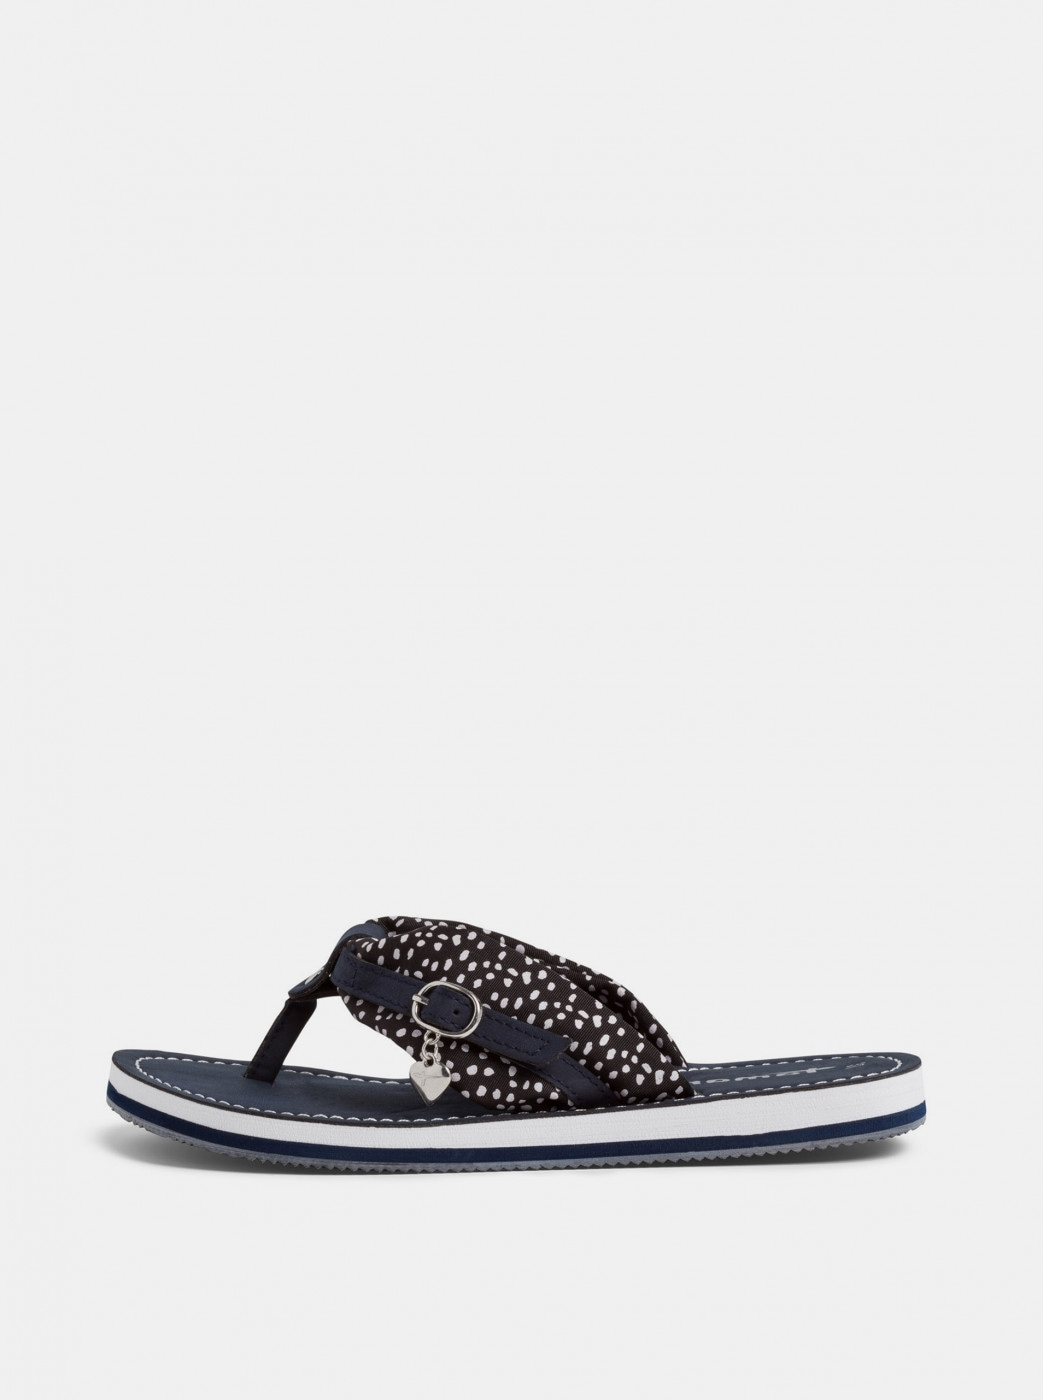 Tamaris Dark Blue Patterned Flip-Flops